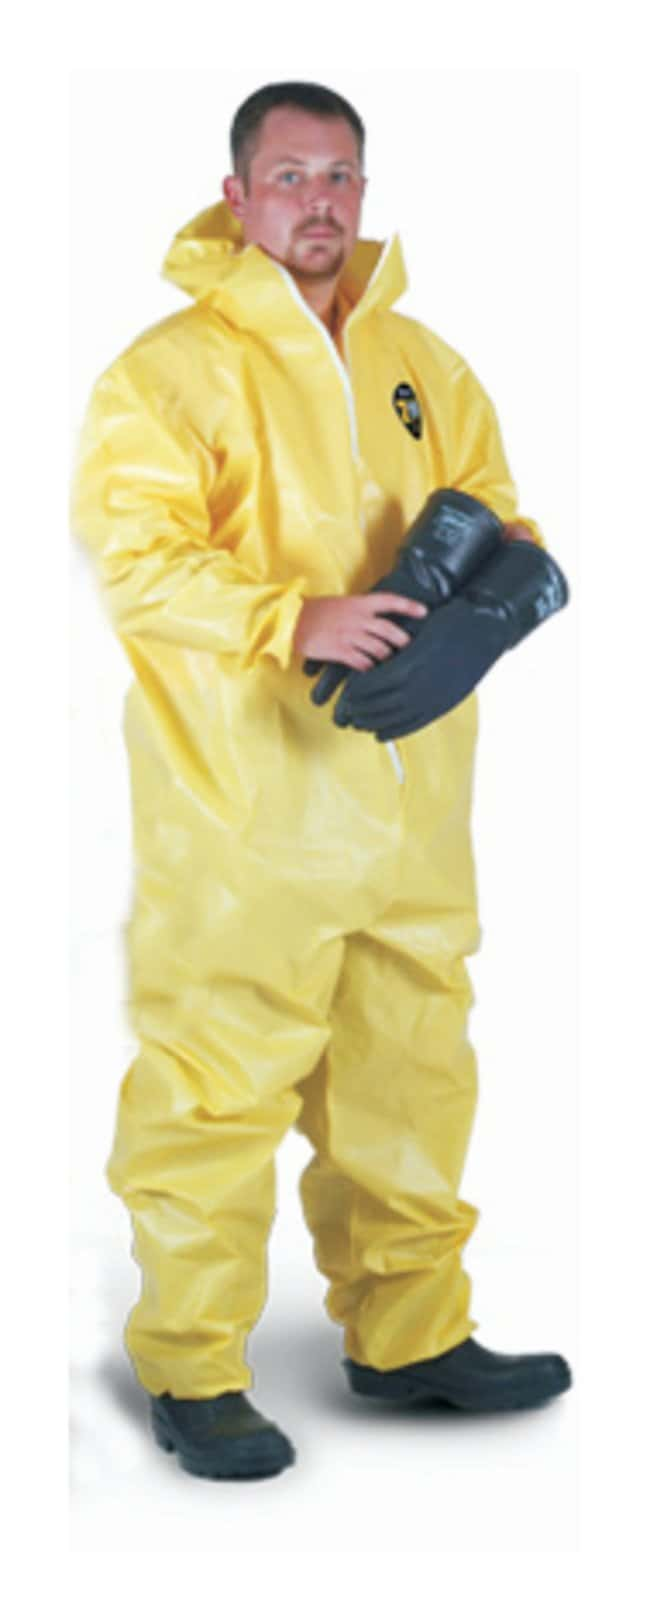 Kappler Zytron 100 Chemical-Resistant Coveralls Bound Seams; Attached hood,